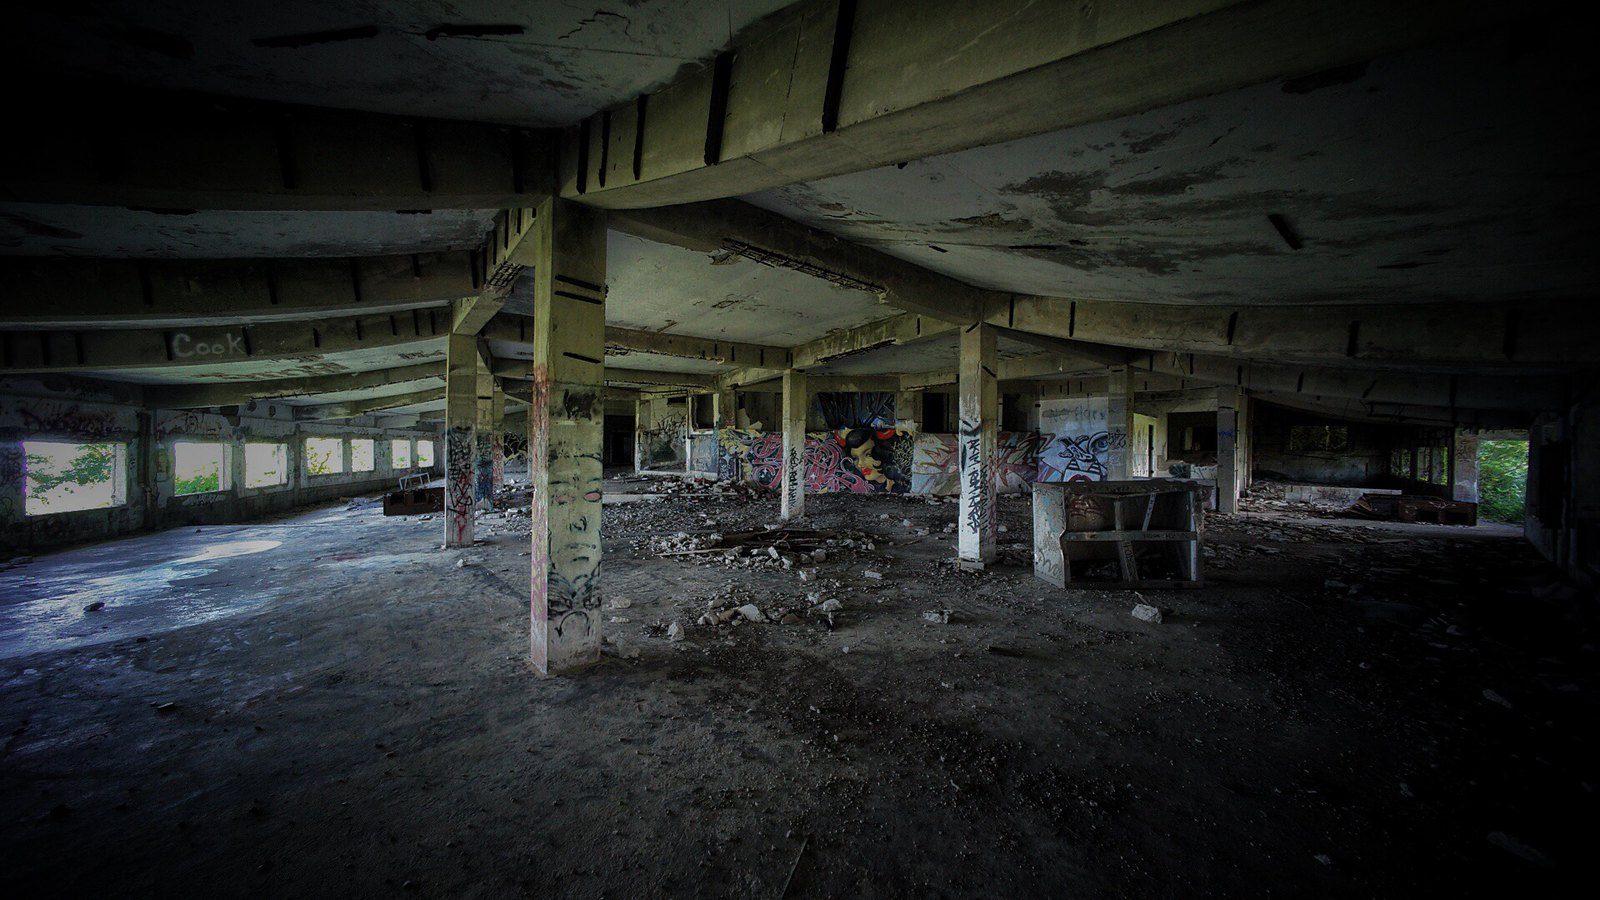 Also, here is some more urbex from the other day. #SonyA7 #Voigtlander12mm #UltraWideAngle #foto #Okinawa #japan15 #urbex